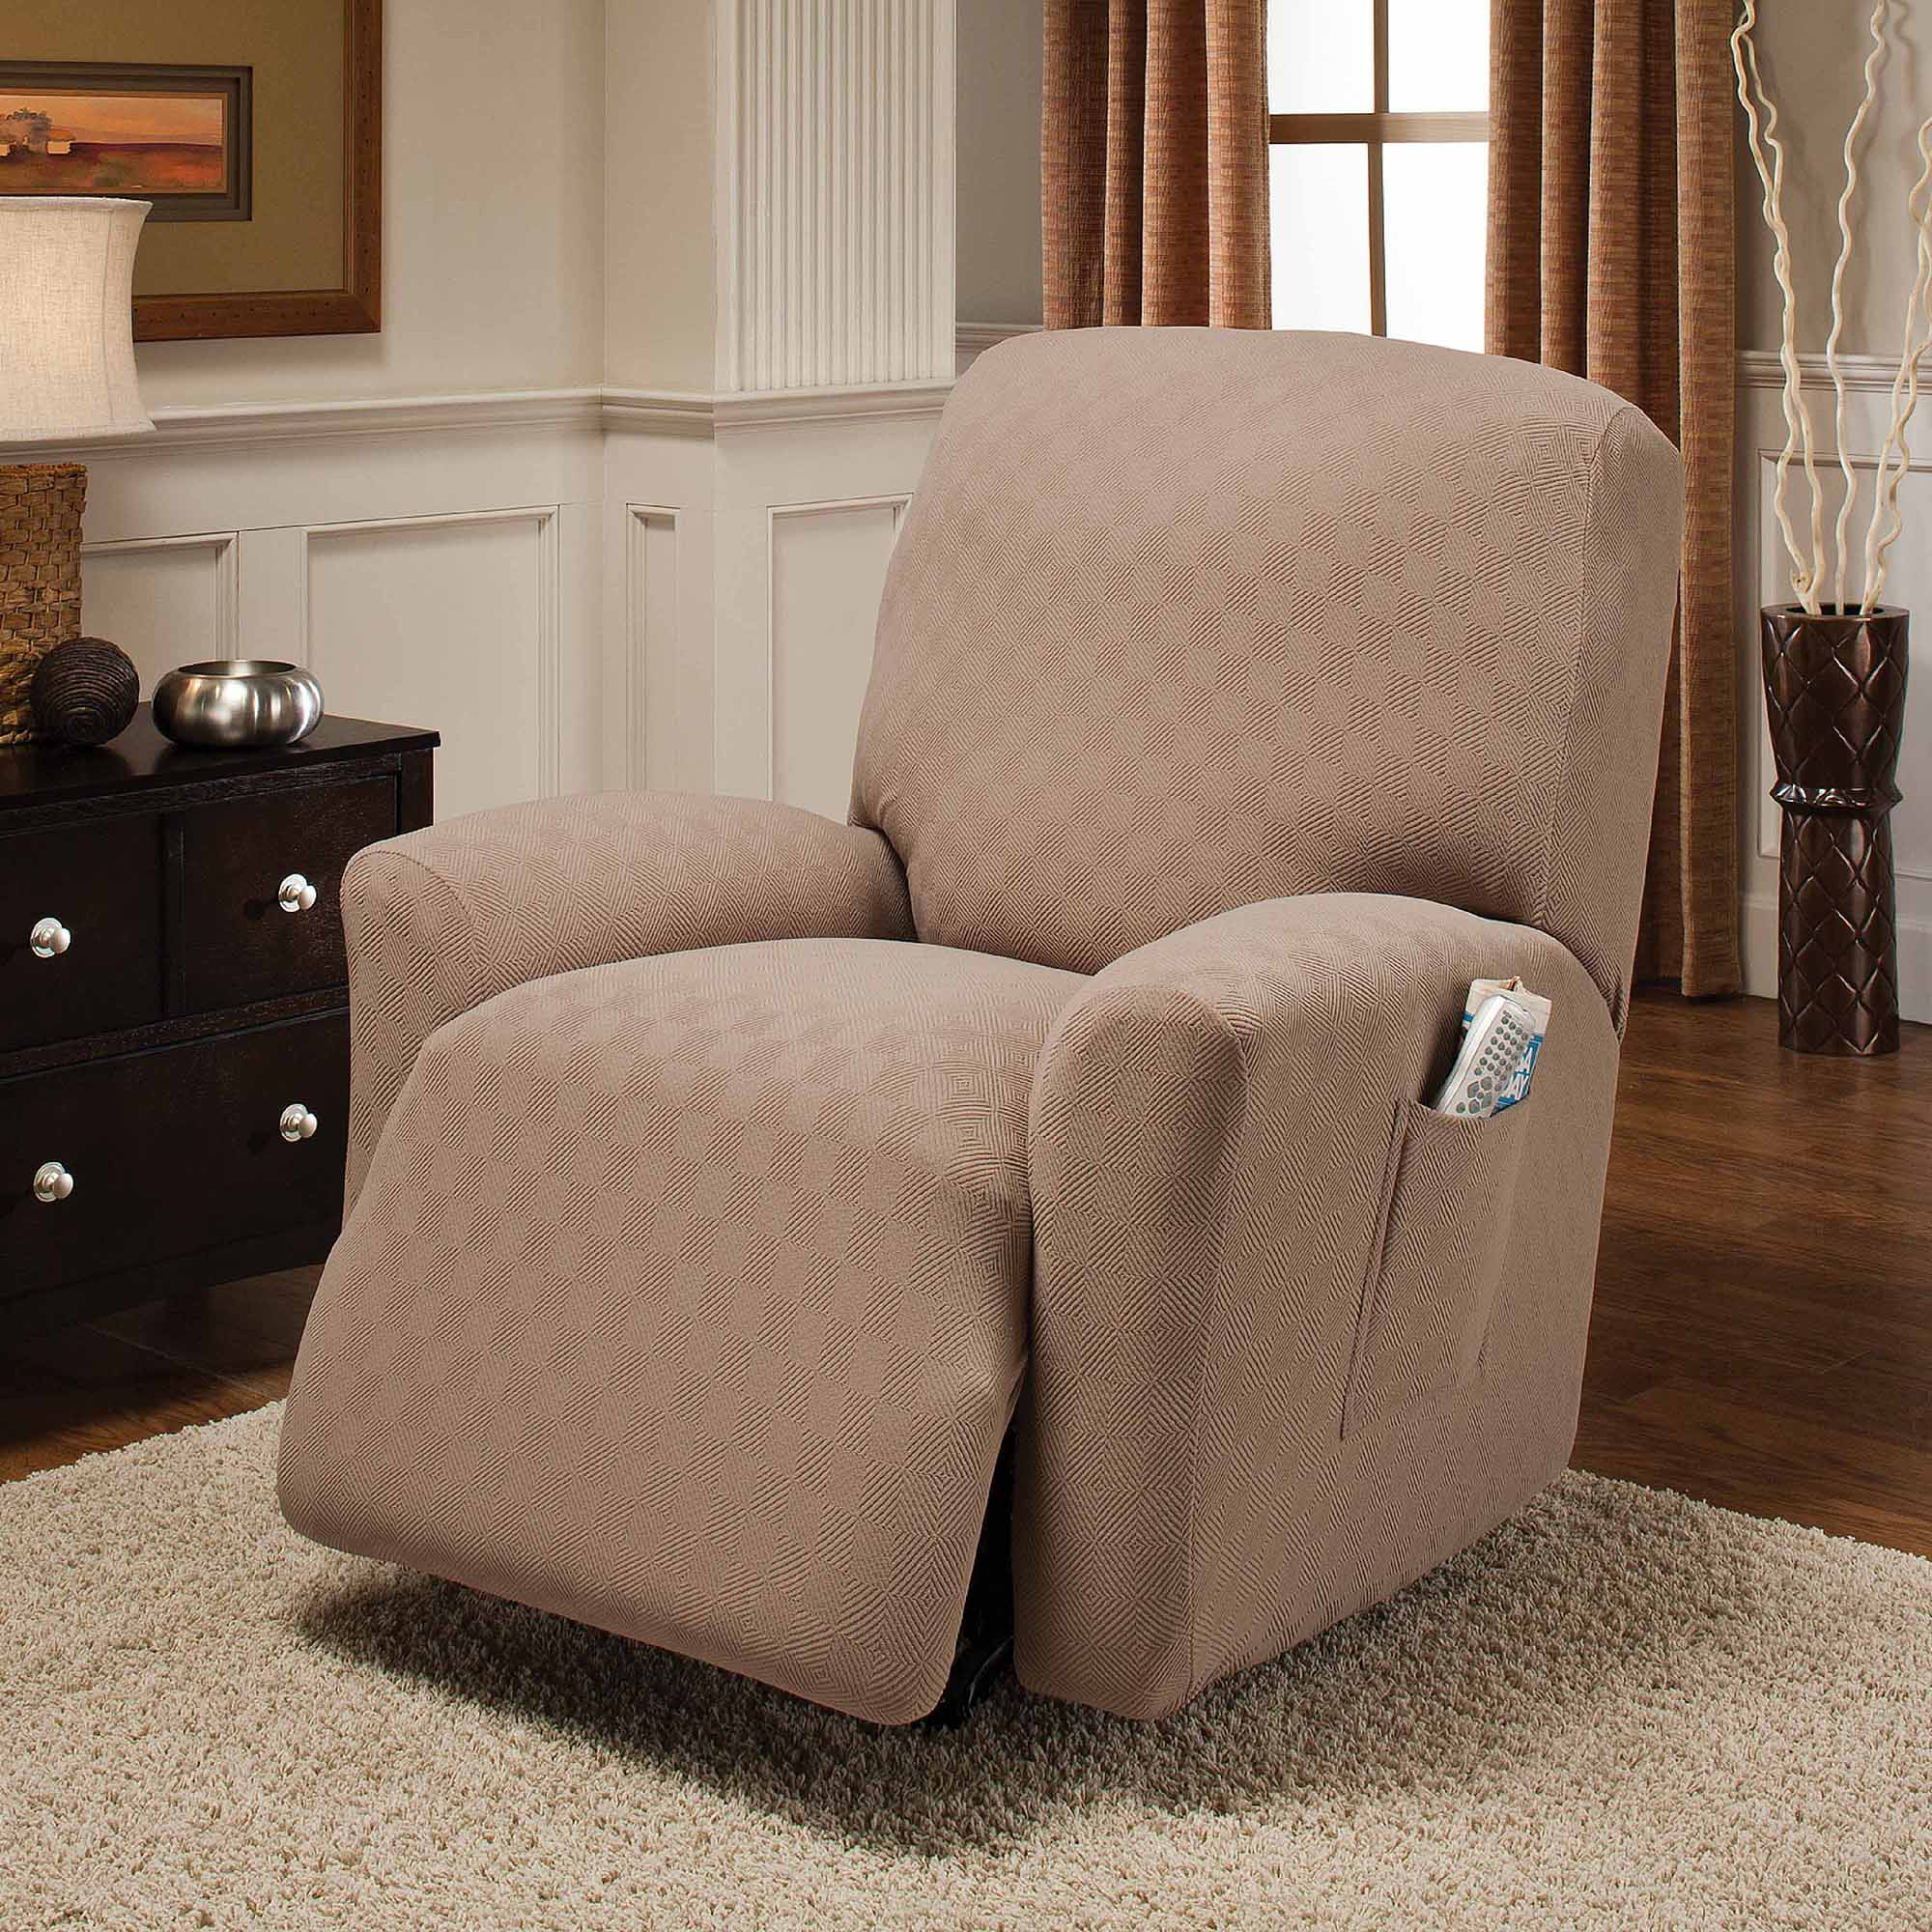 Jersey Stretch Large Recliner Slipcover  Walmartcom